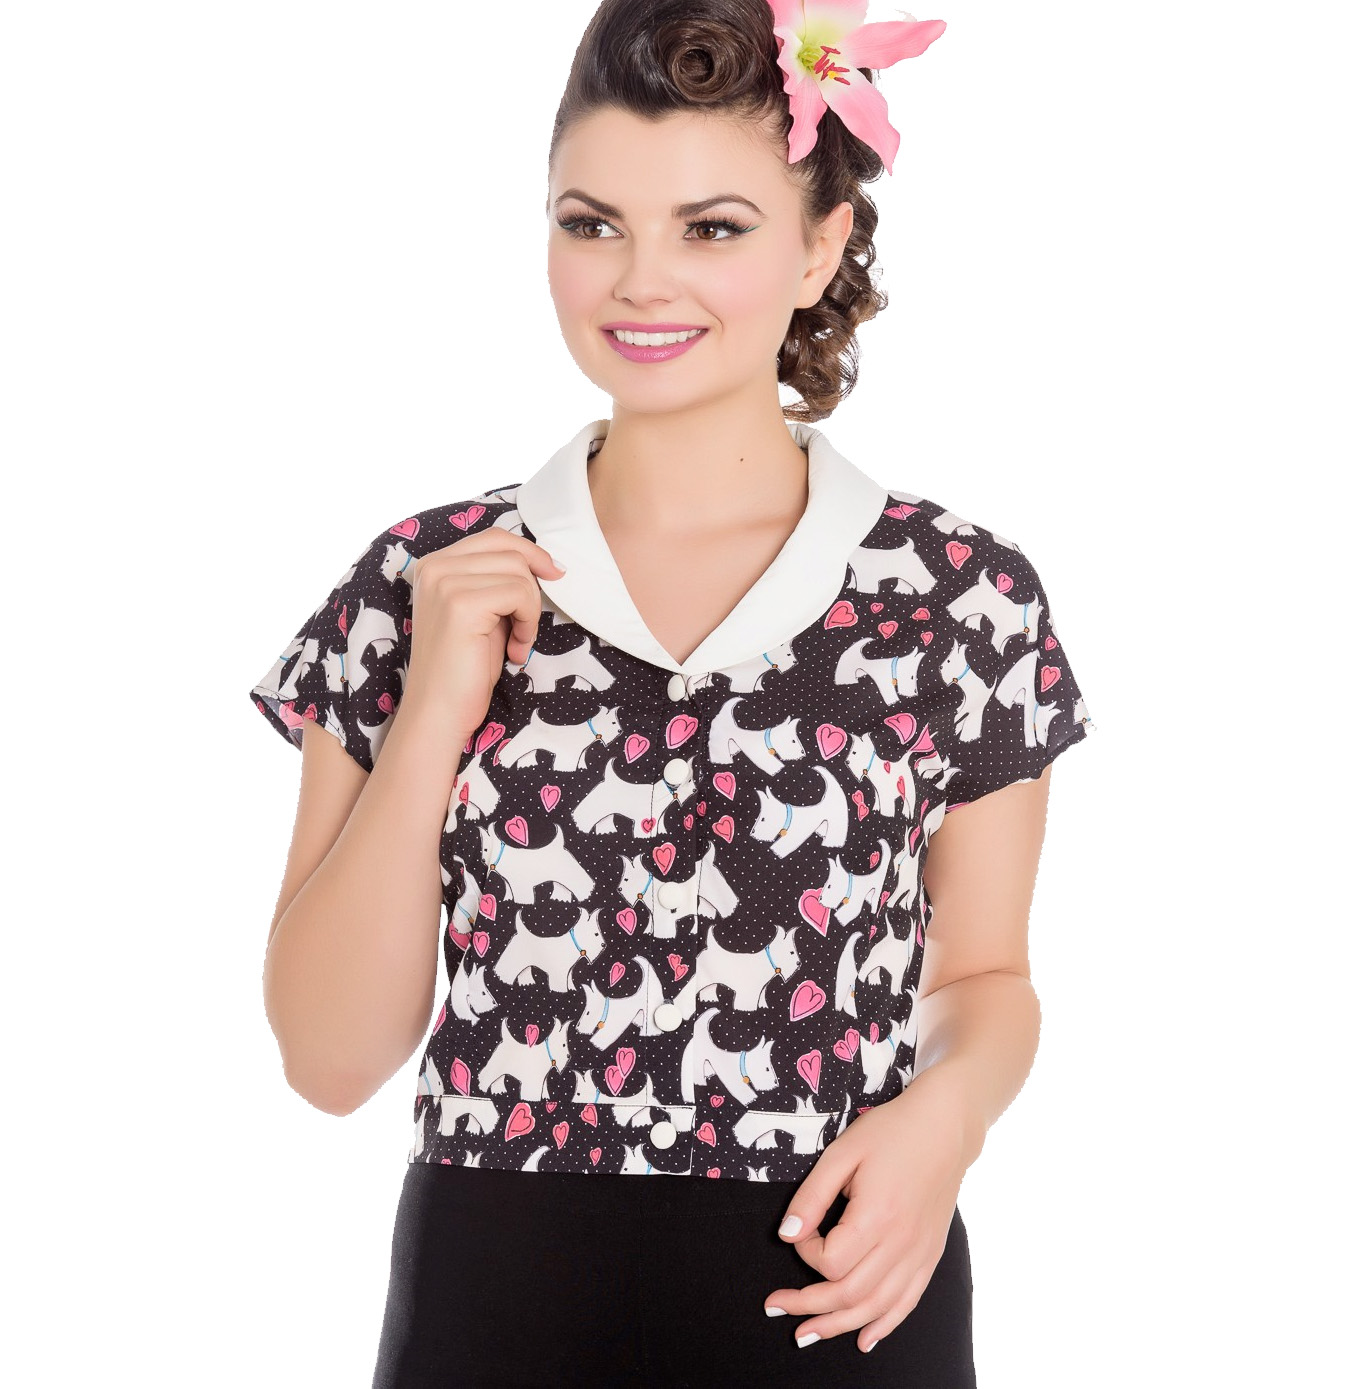 Hell-Bunny-50s-Retro-Top-Scottie-Dog-Heart-AGGY-Cropped-Blouse-Shirt-All-Sizes thumbnail 7